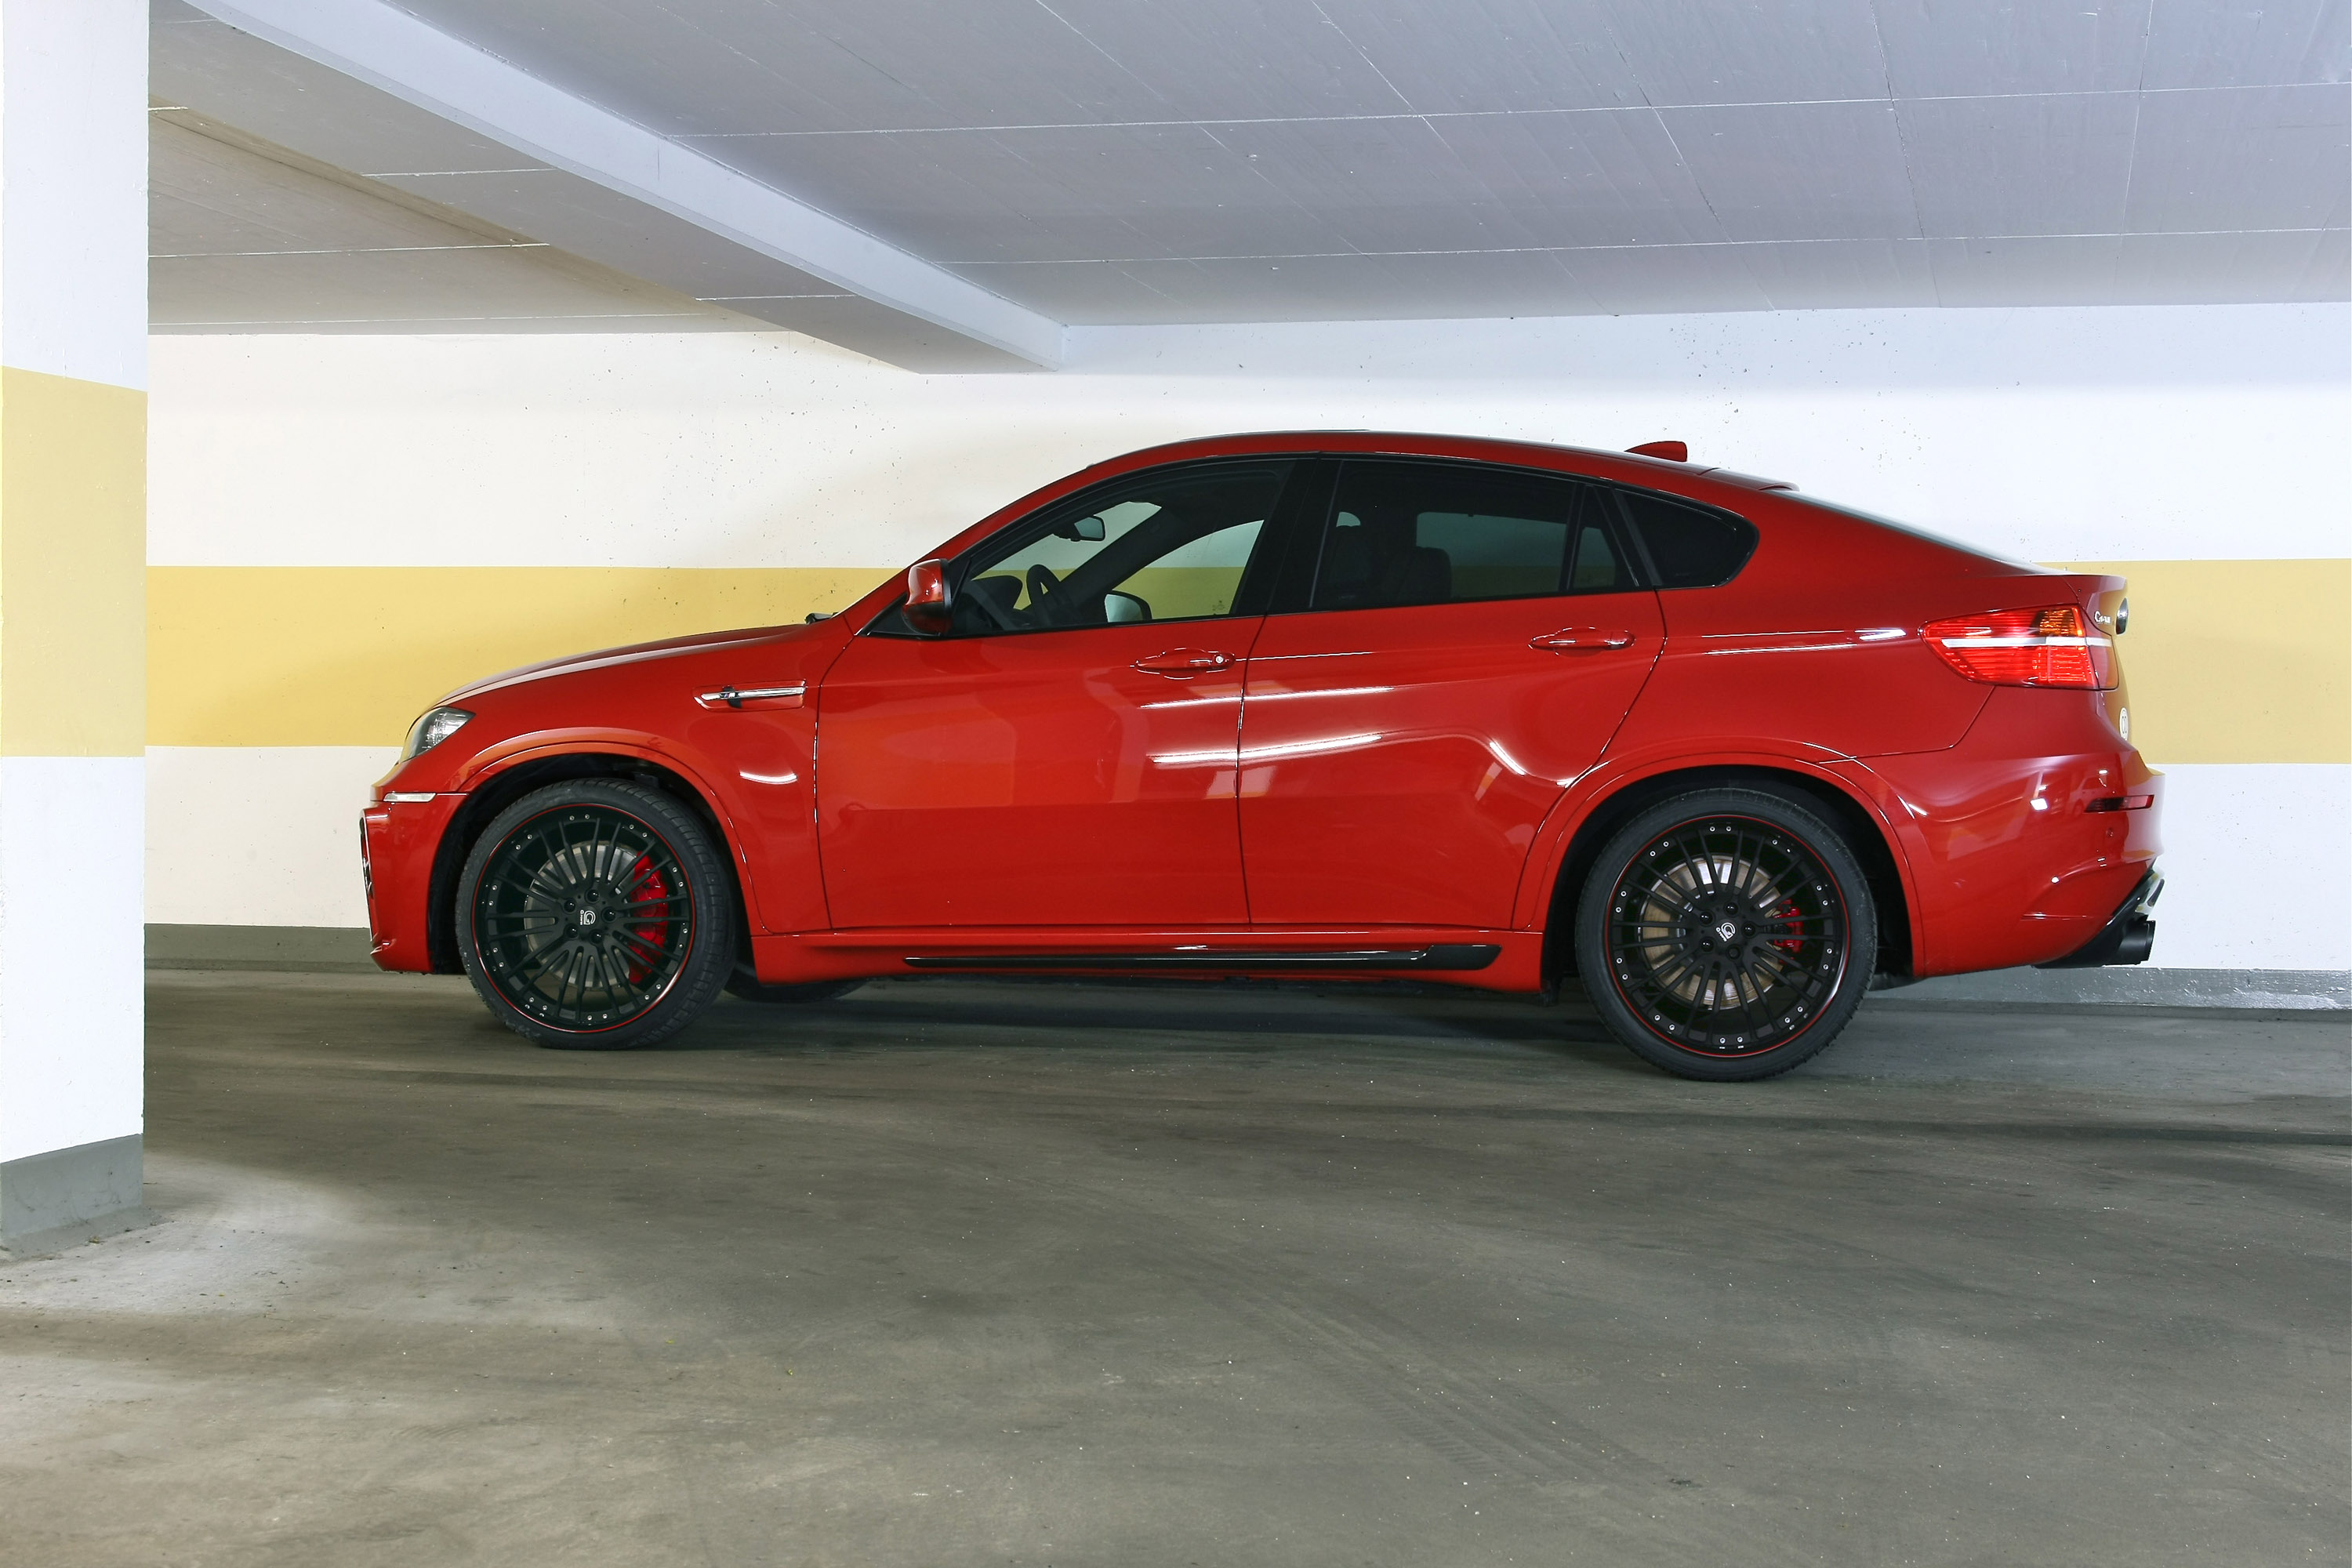 G Power Bmw X6 M Typhoon S Picture 51114